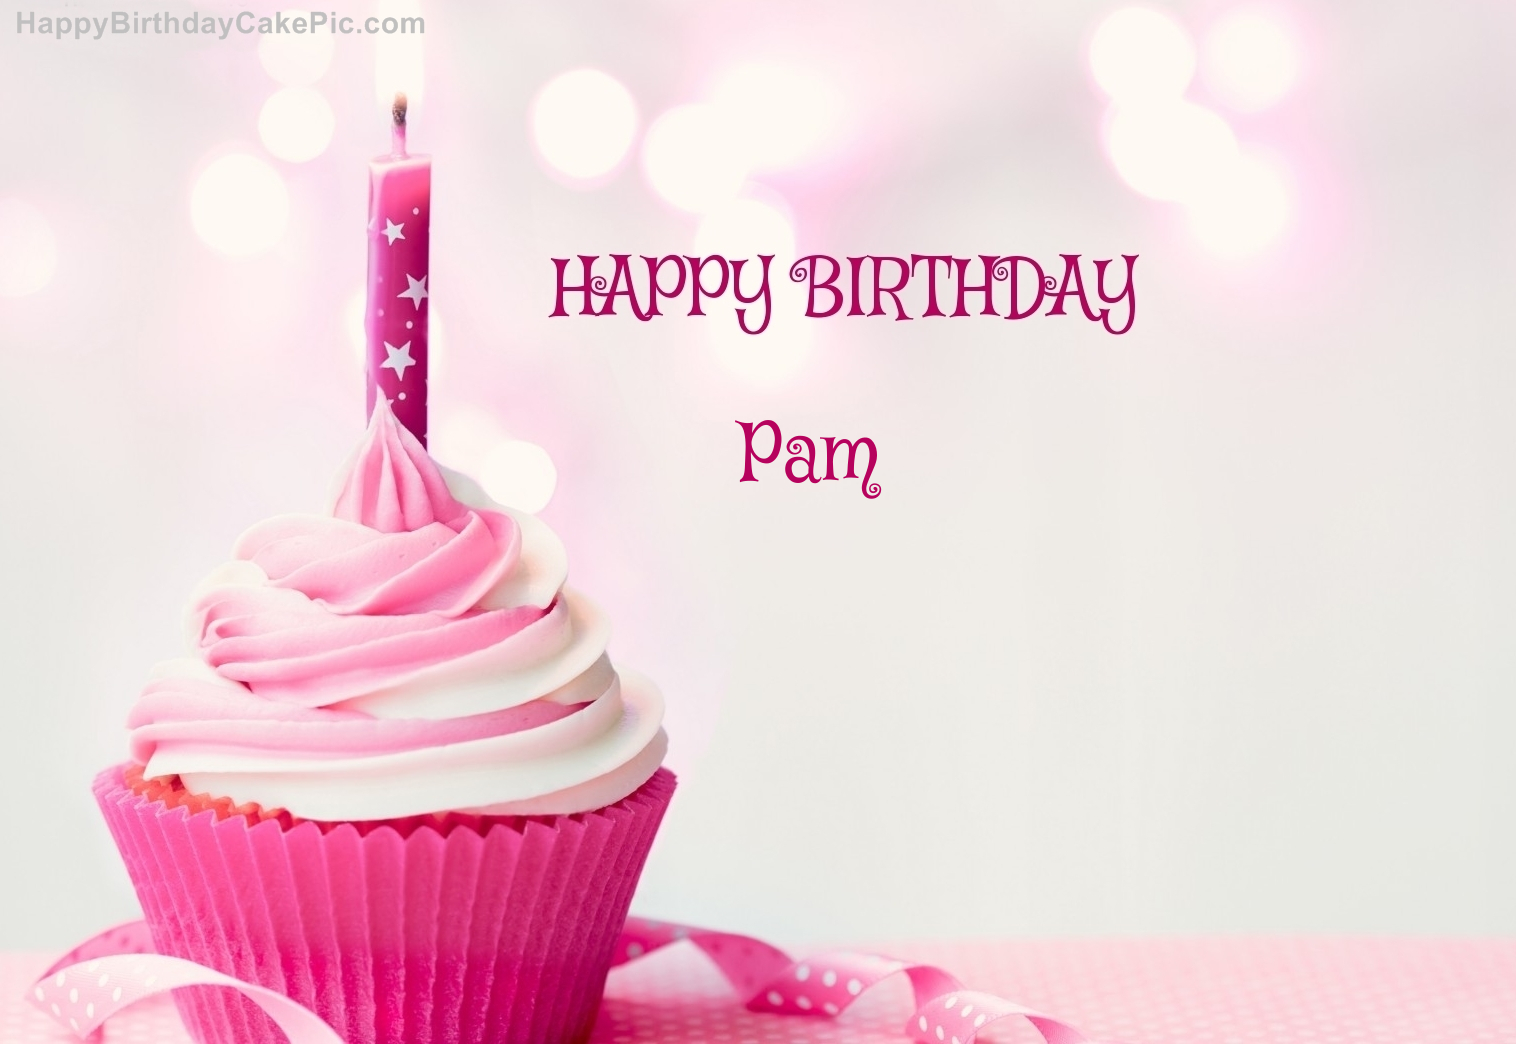 Image Of Birthday Cake For Pam